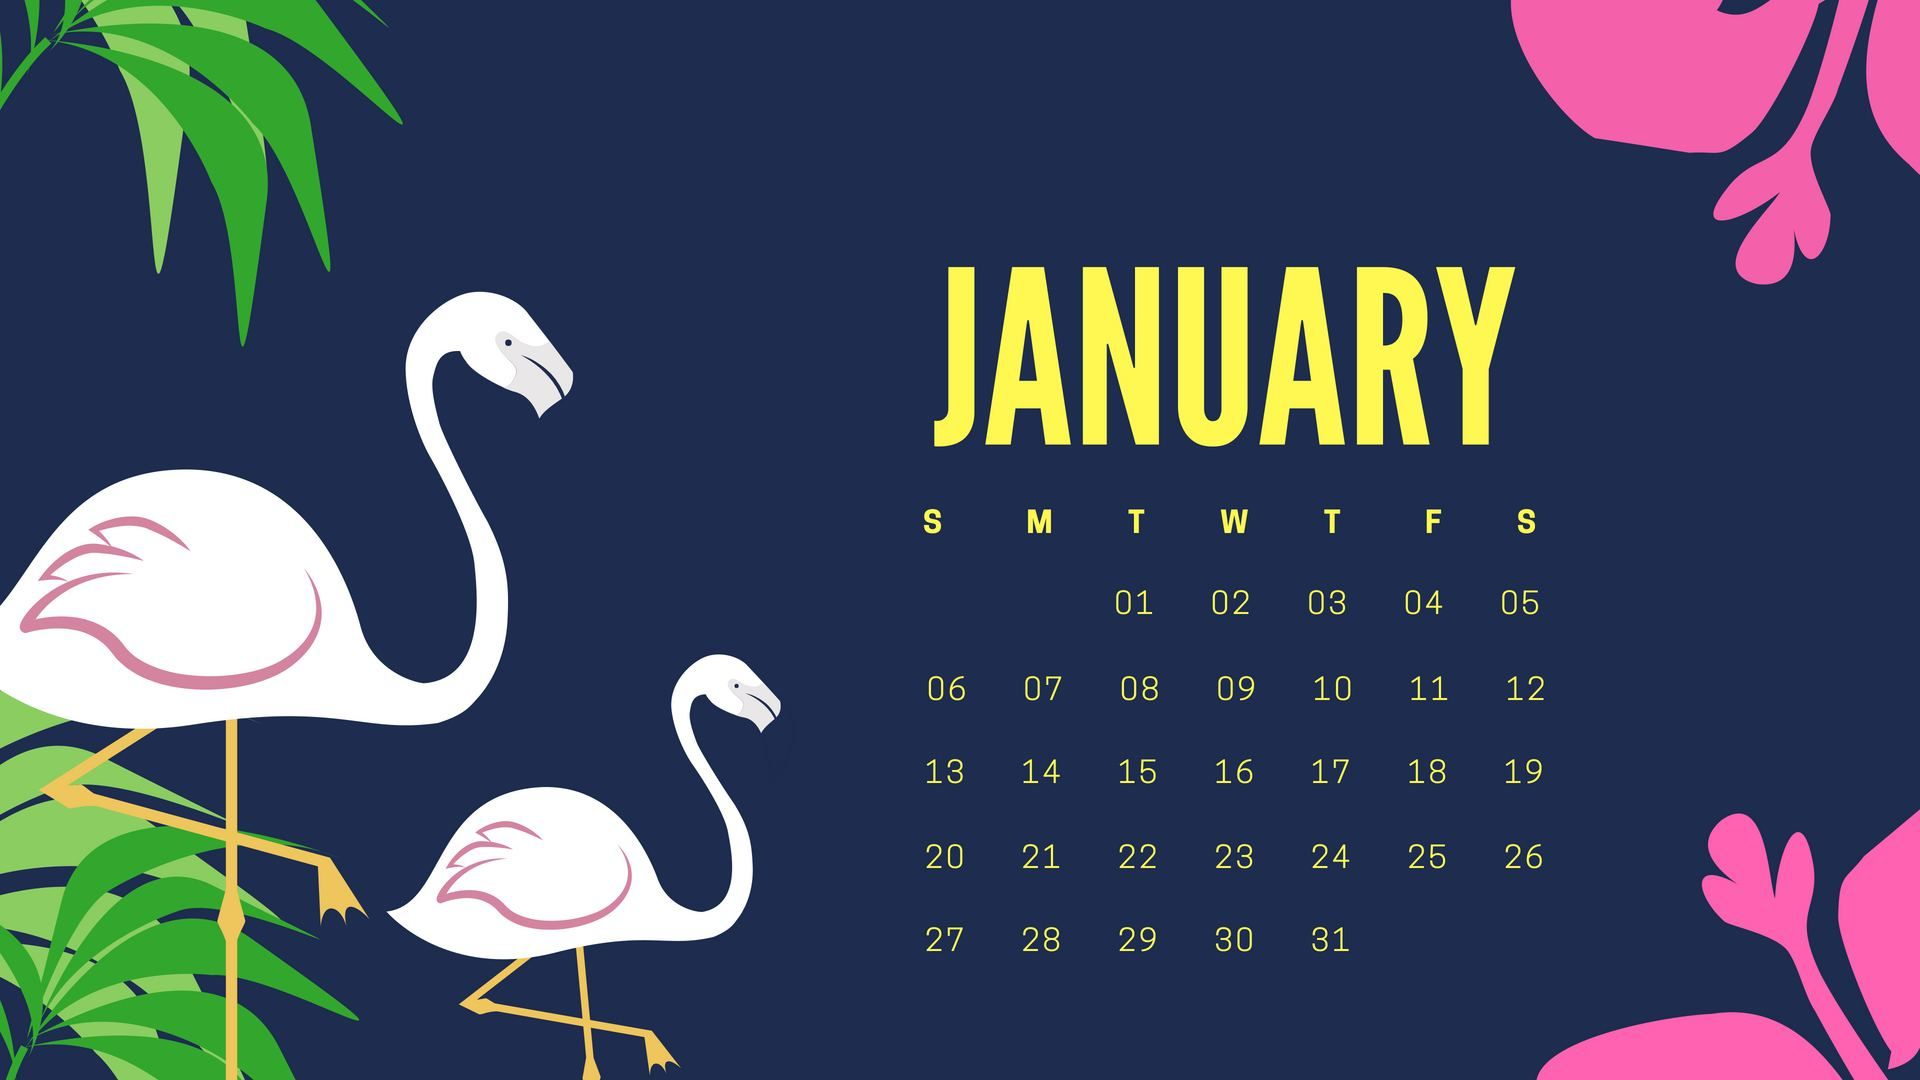 January 2019 Desktop Calendar Wallpaper January 2019 Calendar Desktop Wallpapers Calendar 2019 Printable